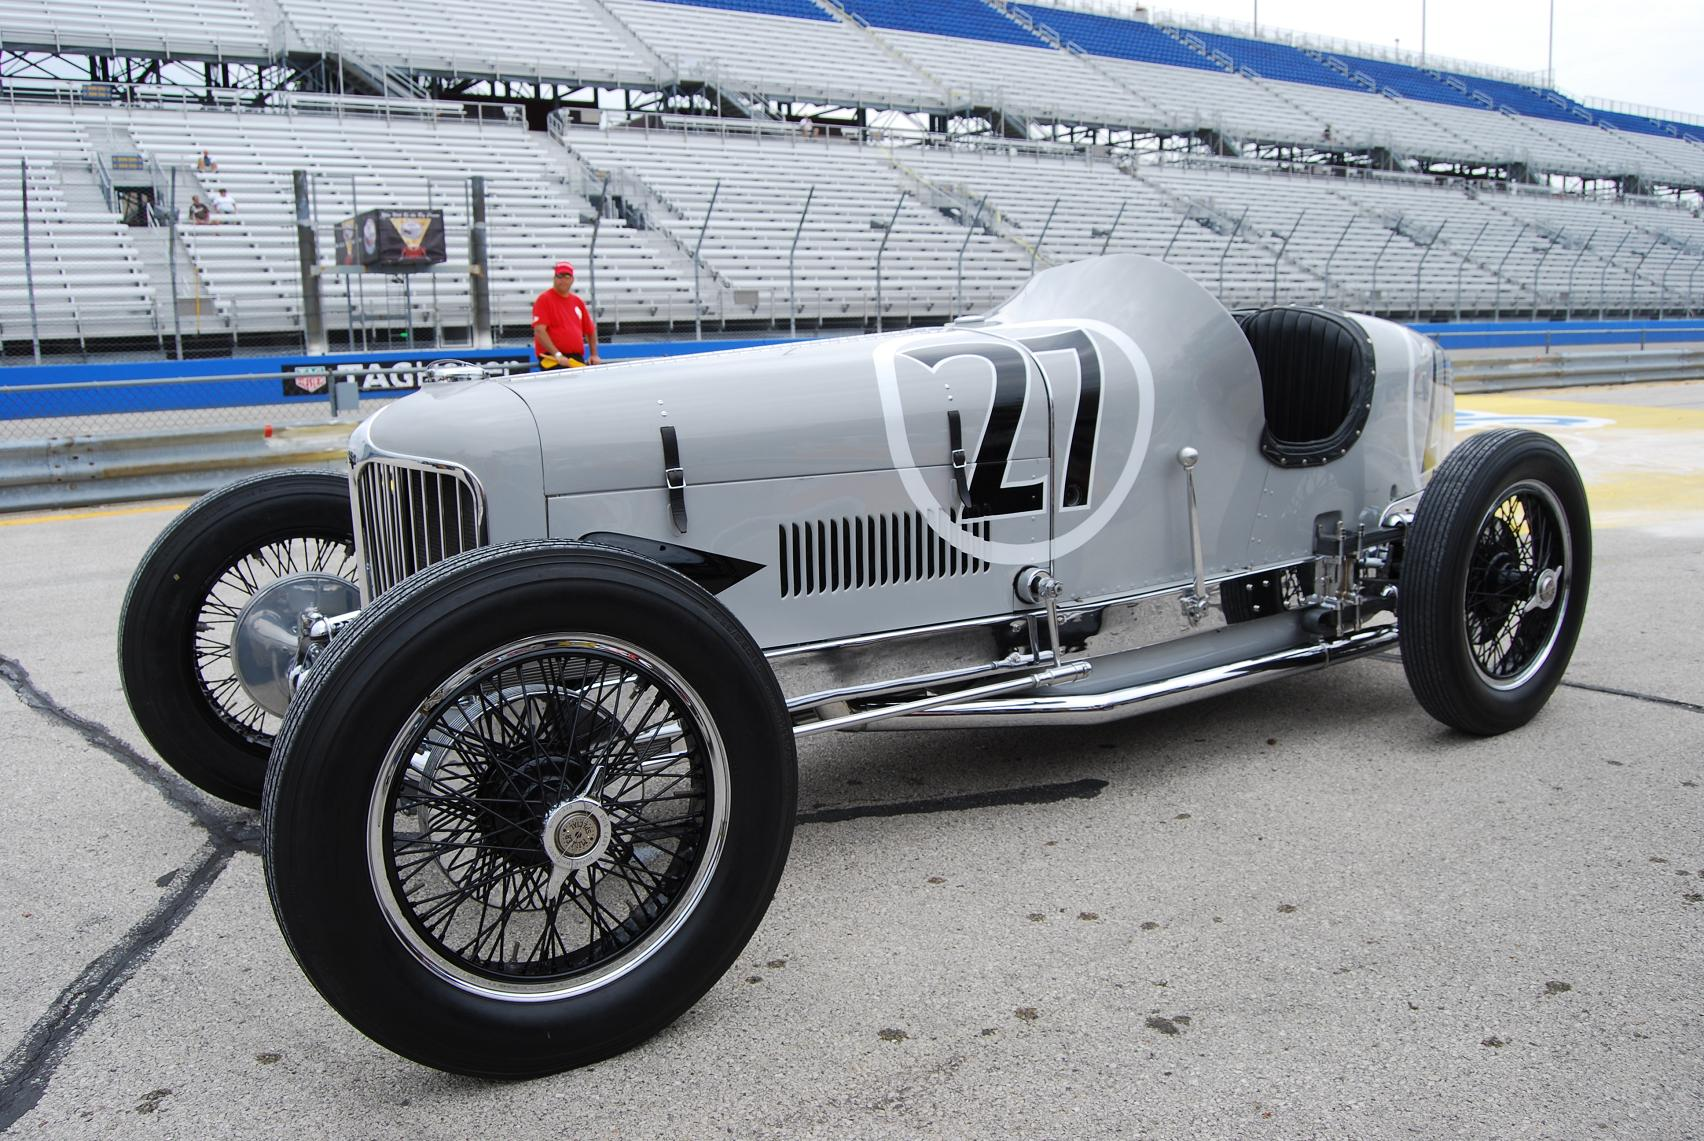 Indy Meets Indy Relics And Racers Meet In Milwaukee